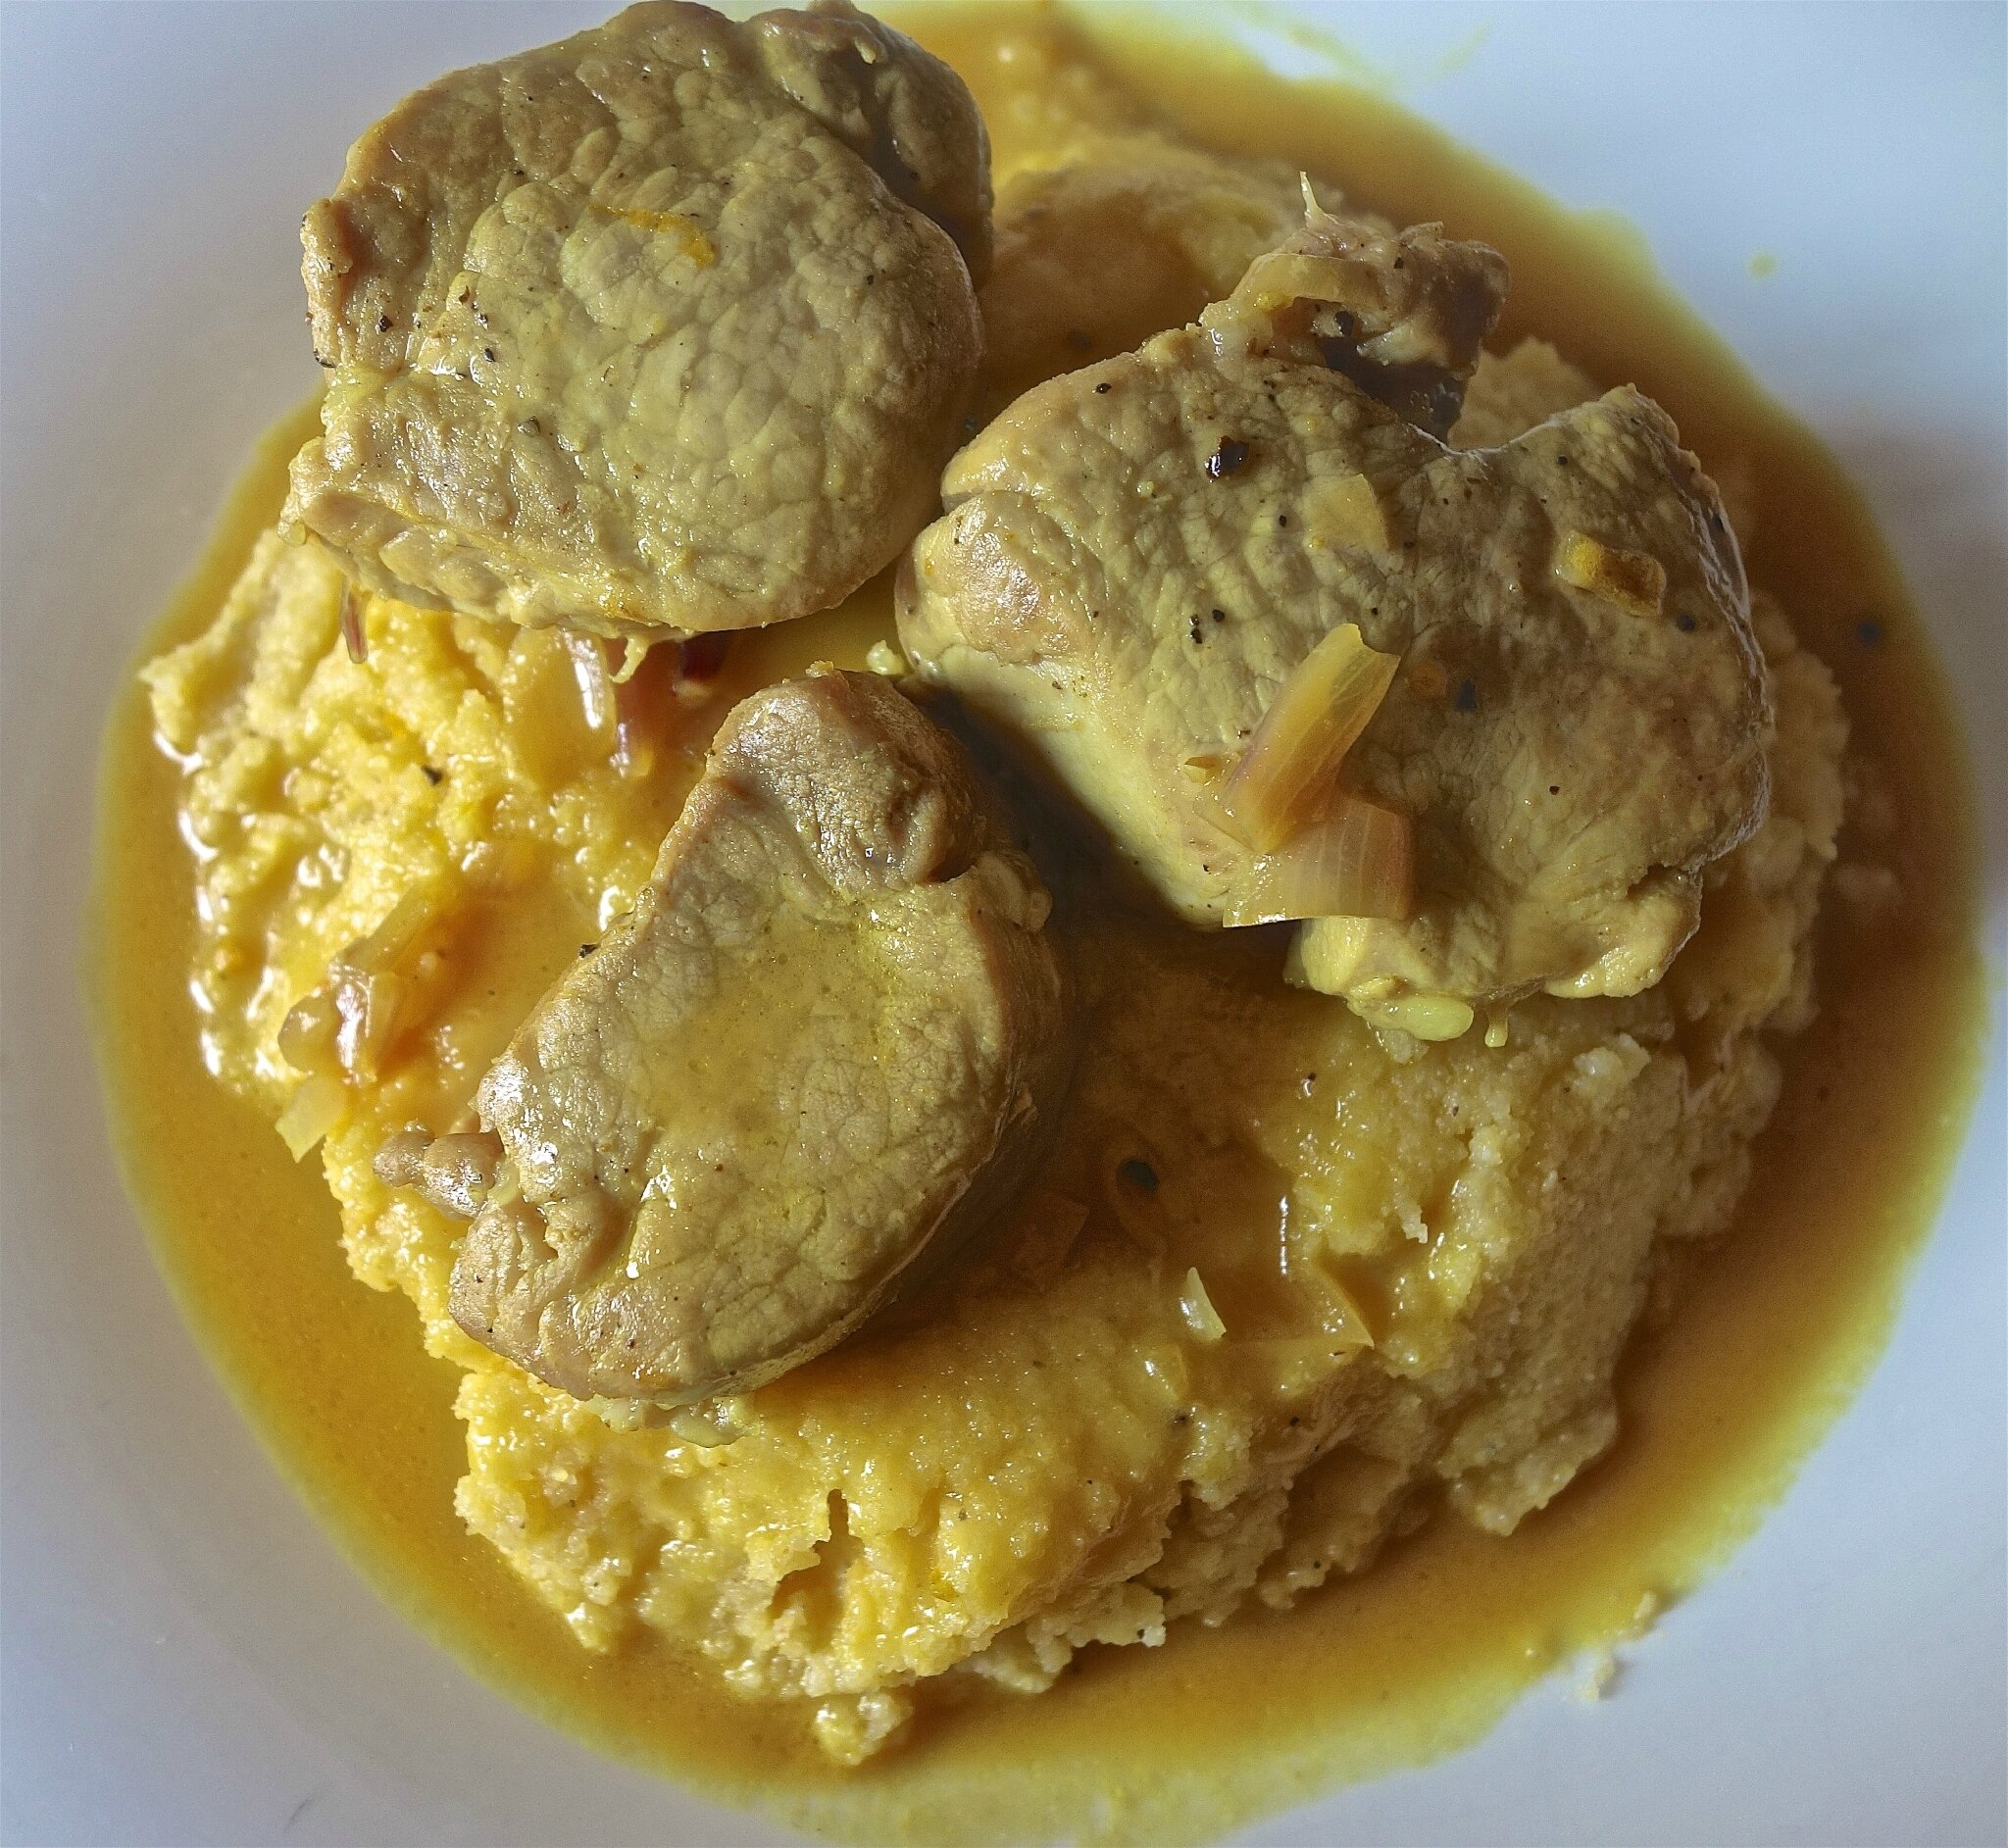 filet mignon de porc à l'orange et au curcuma